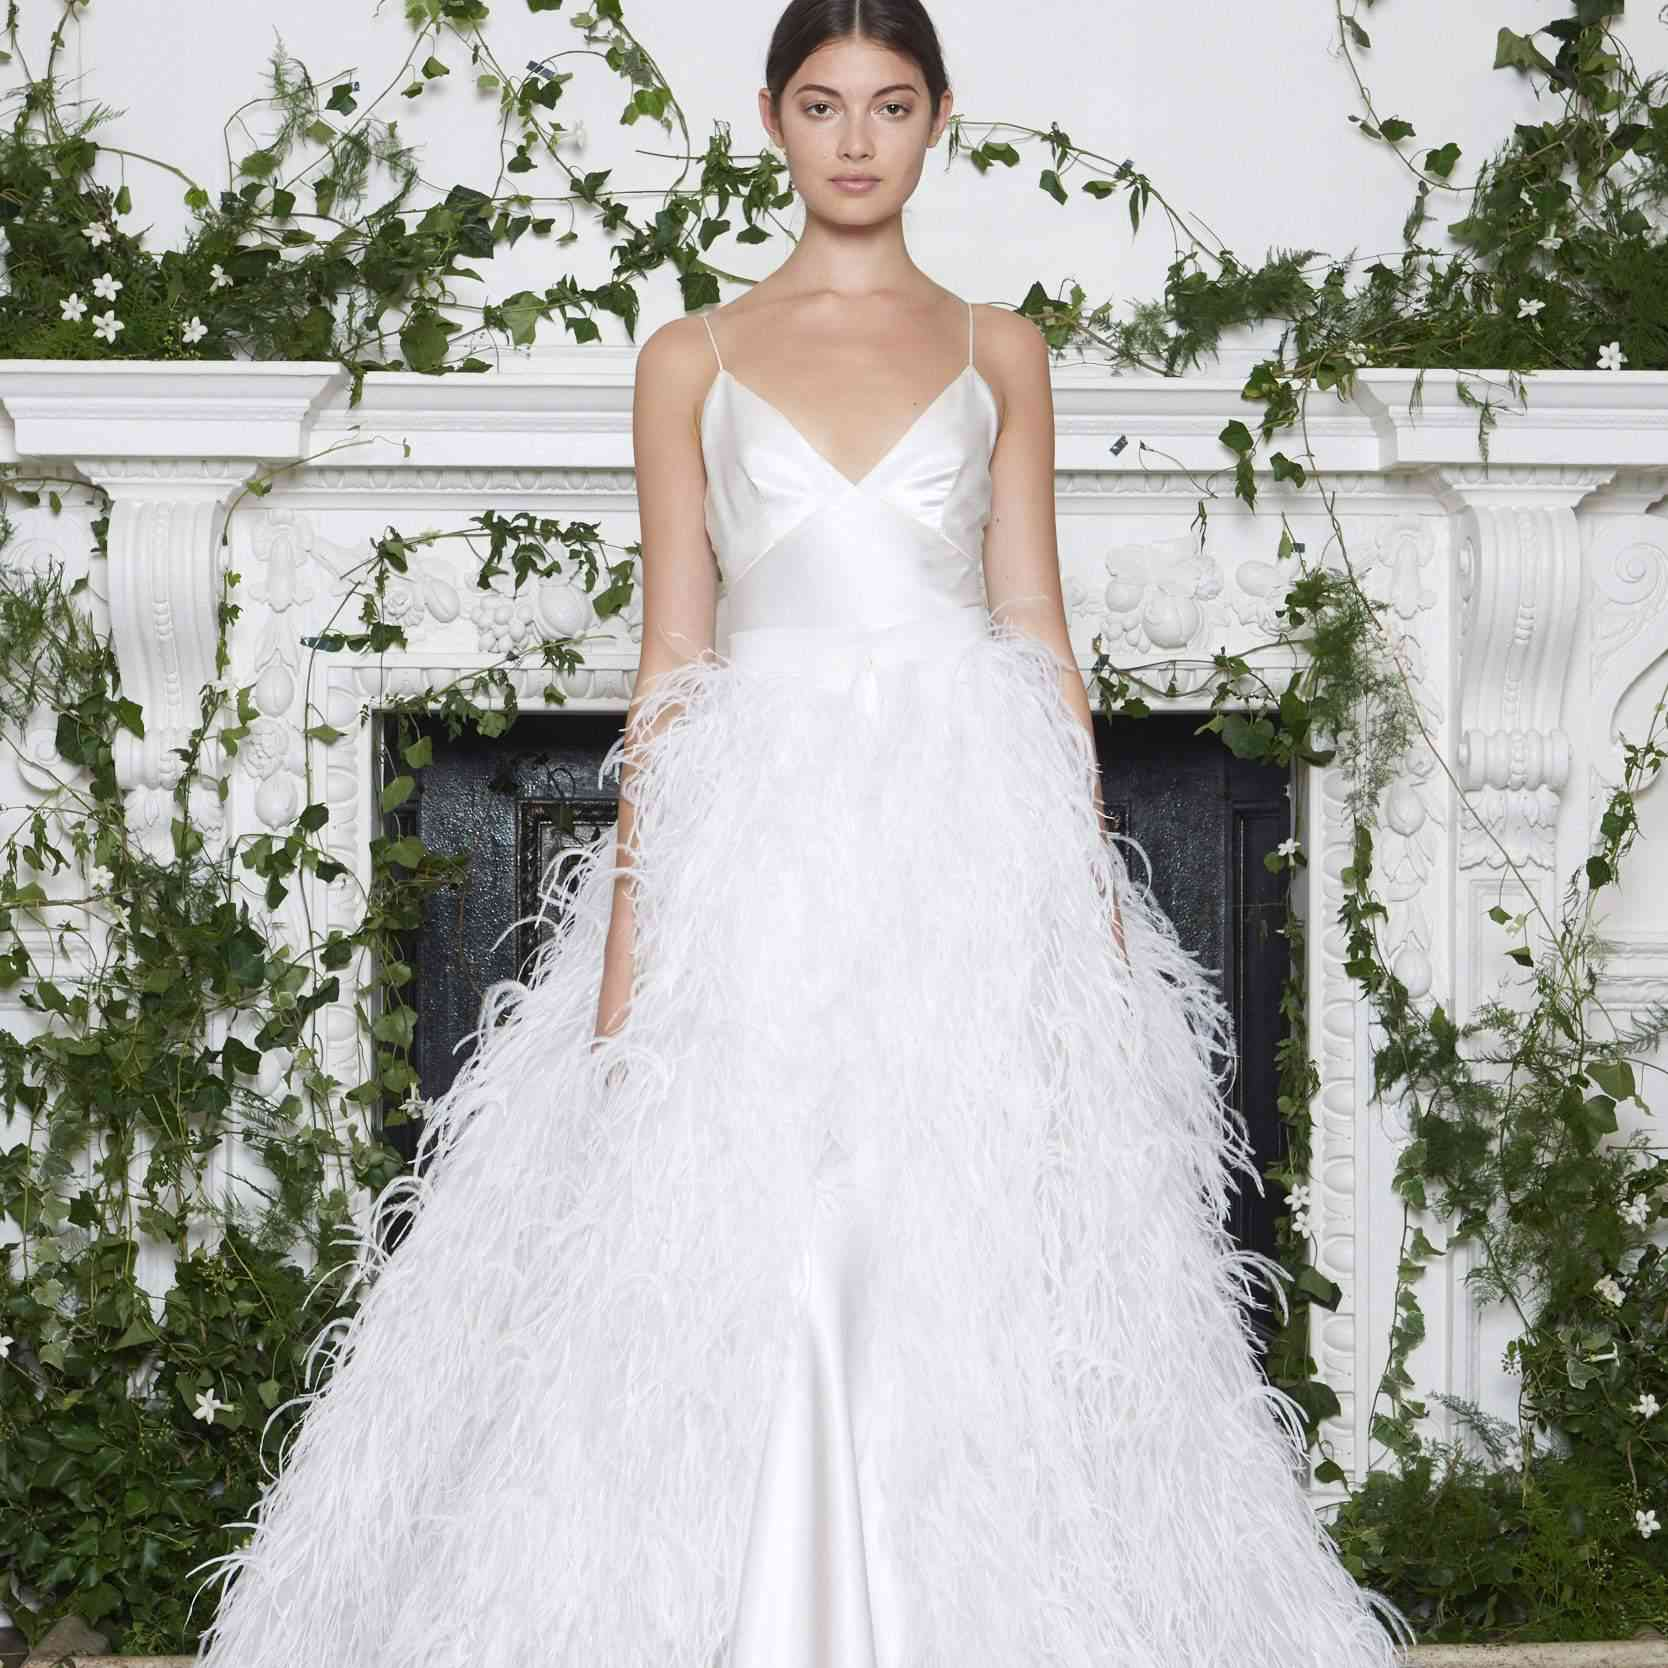 Wedding Gown With Feathers: 30 Feather Accented Wedding Gowns For The Fanciful Bride